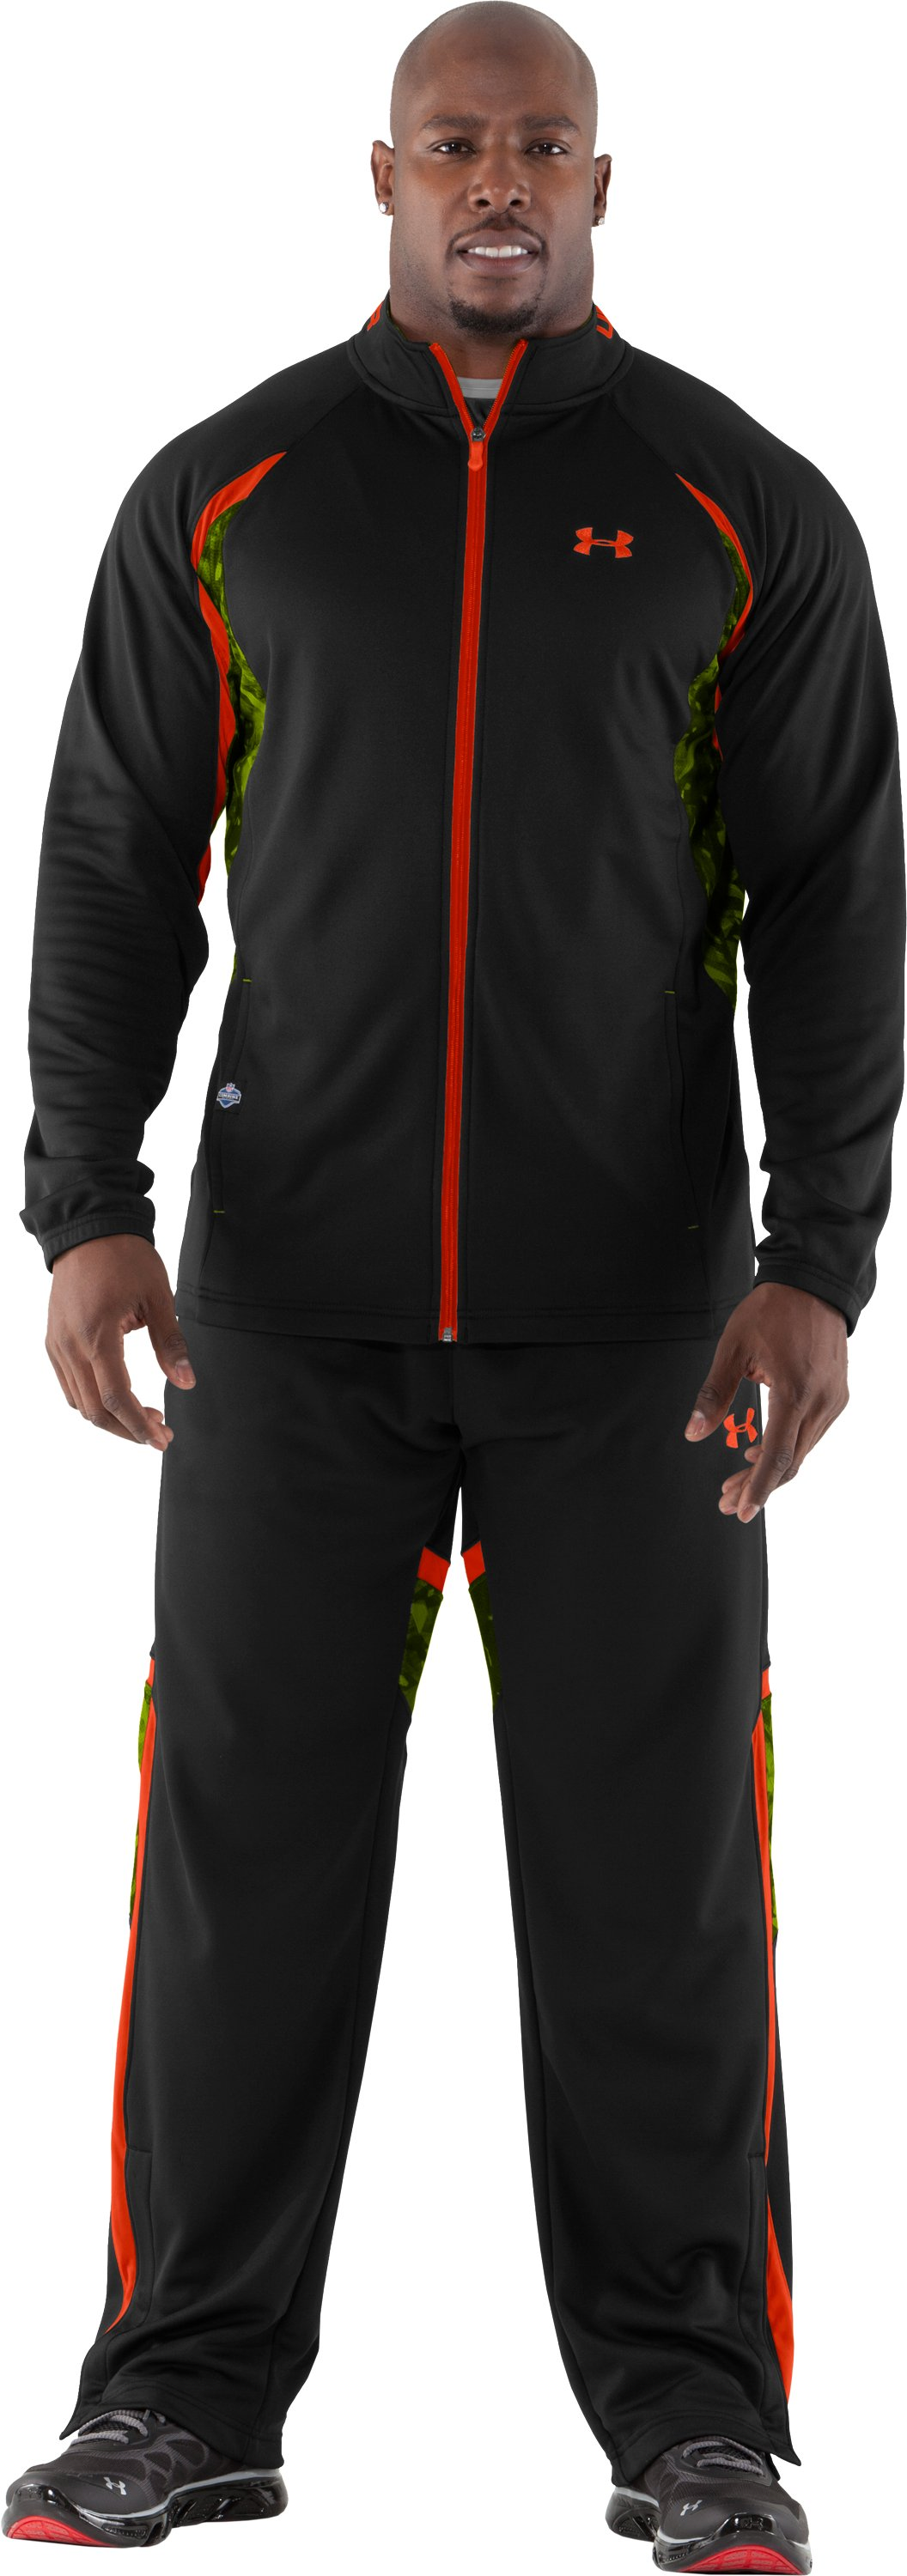 Men's NFL Combine Authentic Warm-Up Jacket, Black , Front